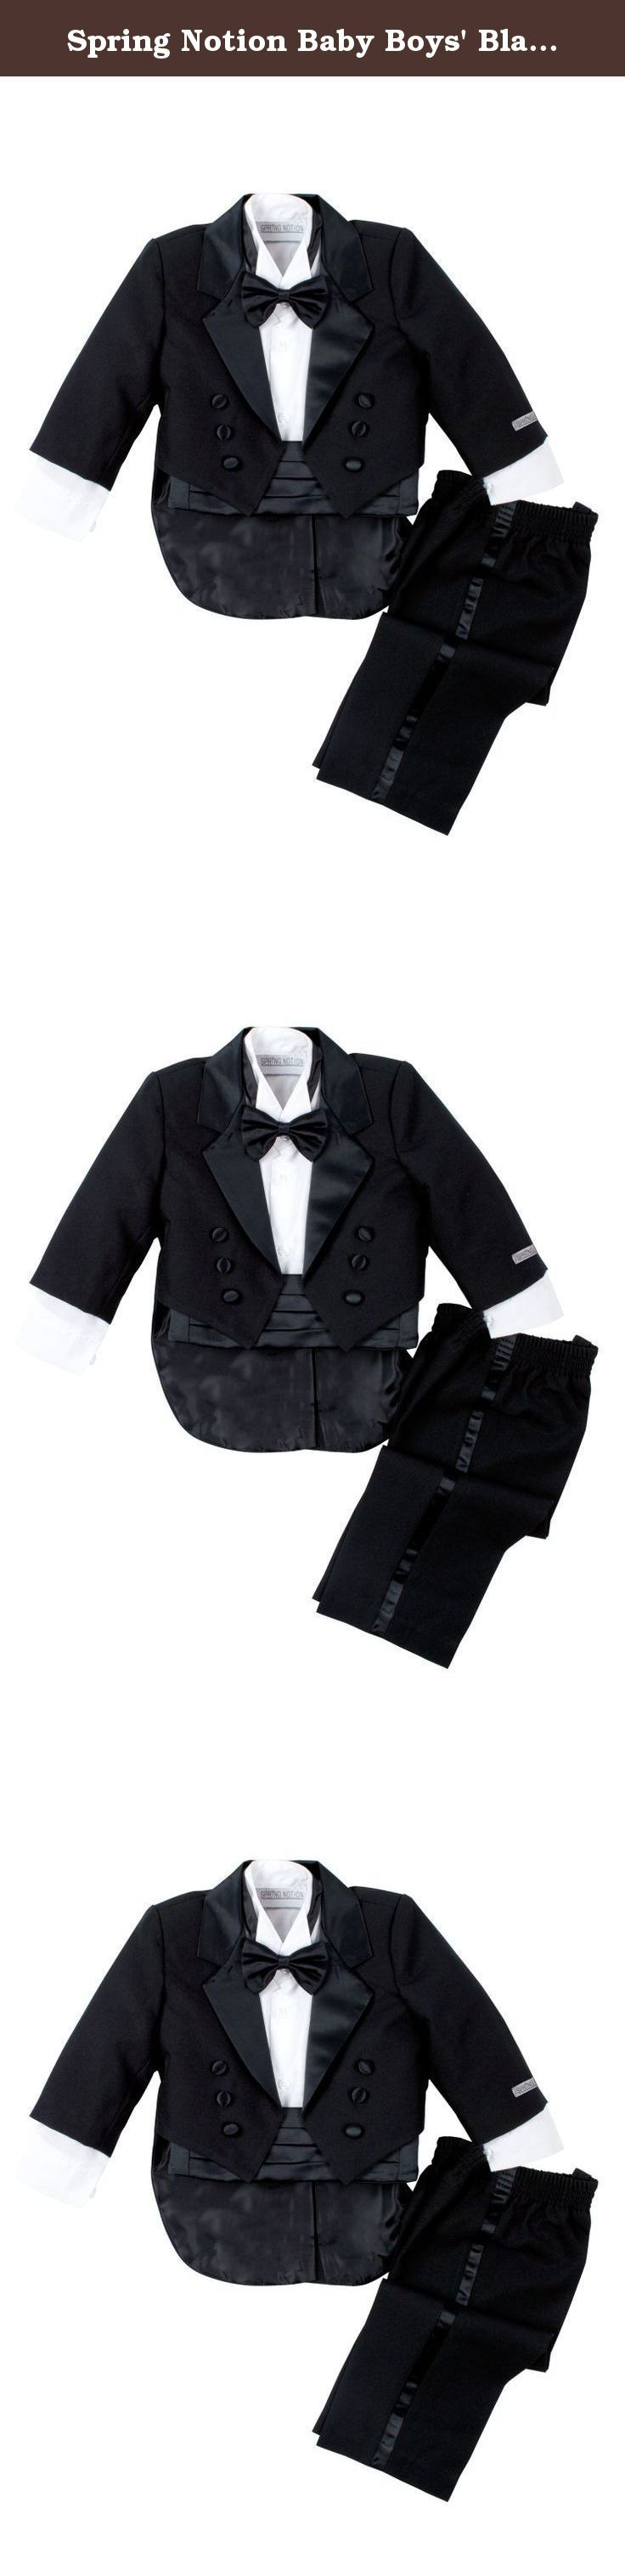 Spring Notion Baby Boys' Black Classic Tuxedo with Tail Extra Large /18-24 Months. This traditional boys tuxedo suit is perfect for Weddings, Church, Baptism, and any Special Occasions. Timeless design. It's a complete set consists of tuxedo, shirt, bow tie, cummerbund and pants.